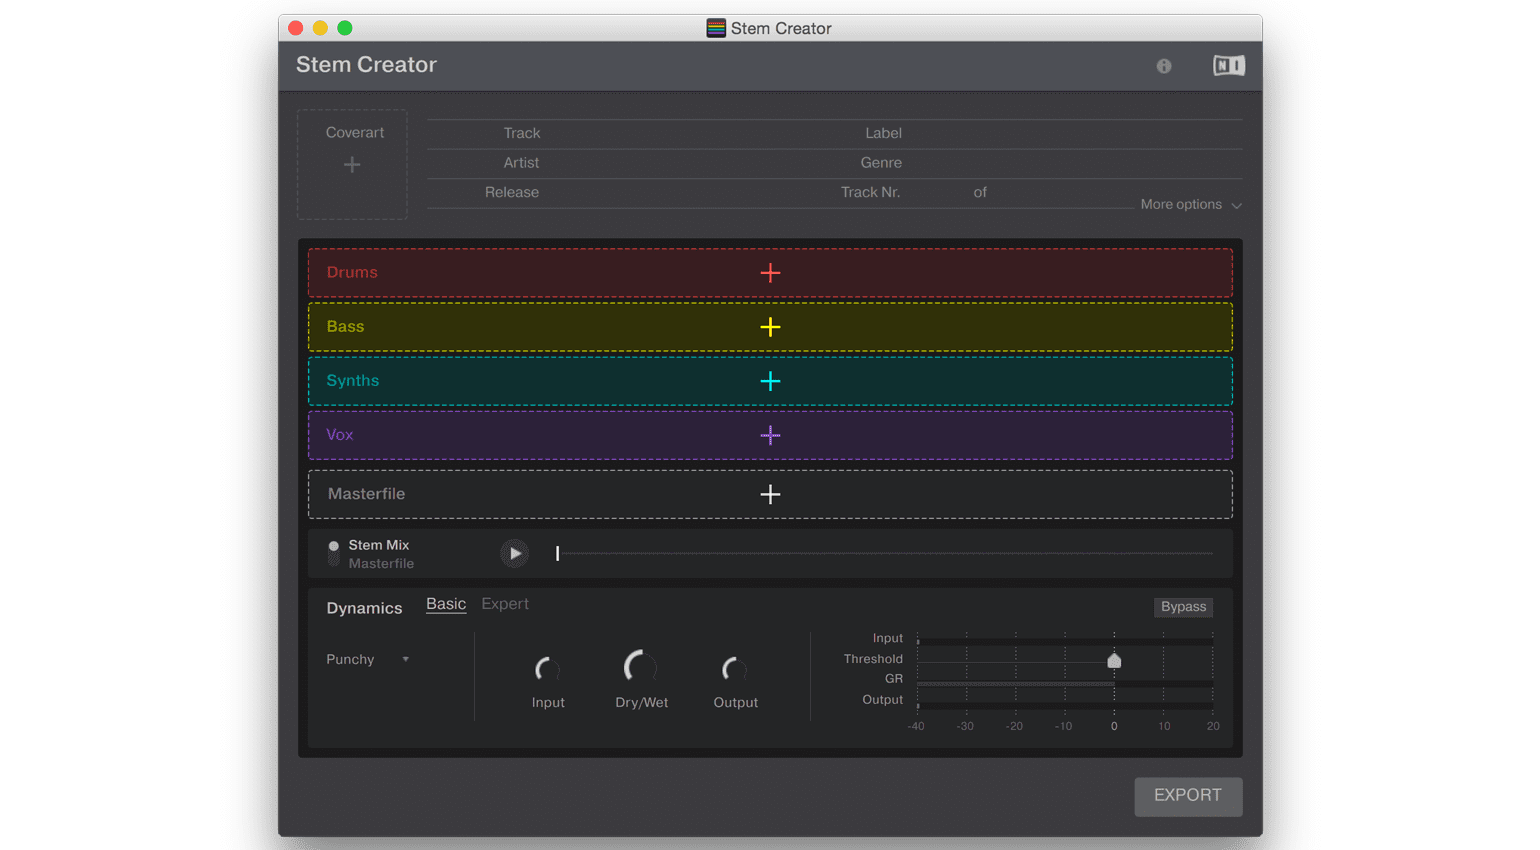 Native Instruments releases Stem Creator Tool in Beta - gearnews com